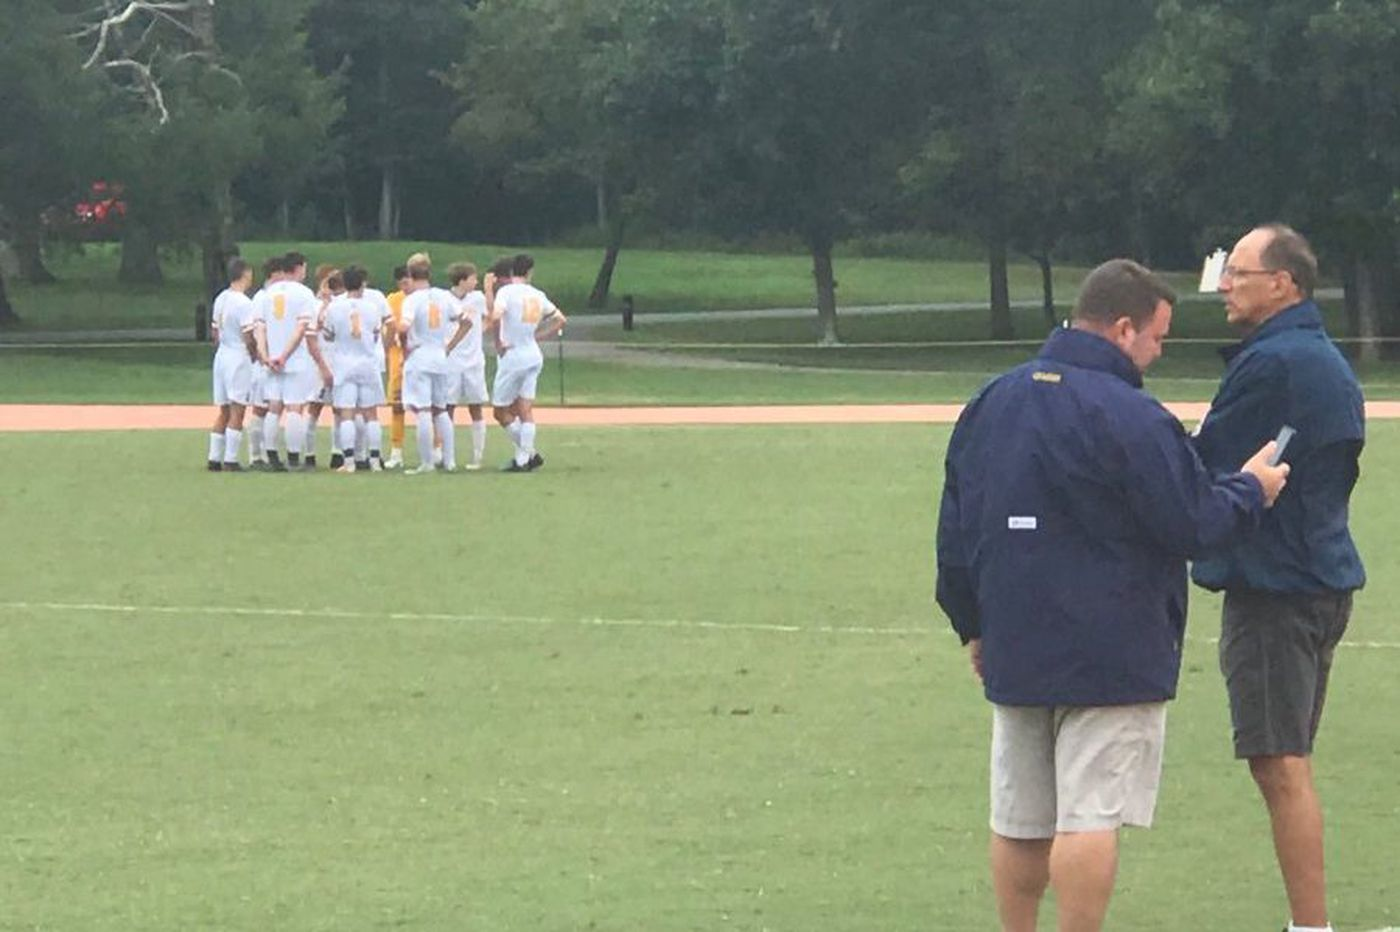 Monday's Southeastern Pa. roundup: Melnick's hat trick lifts Penn Charter over Council Rock South